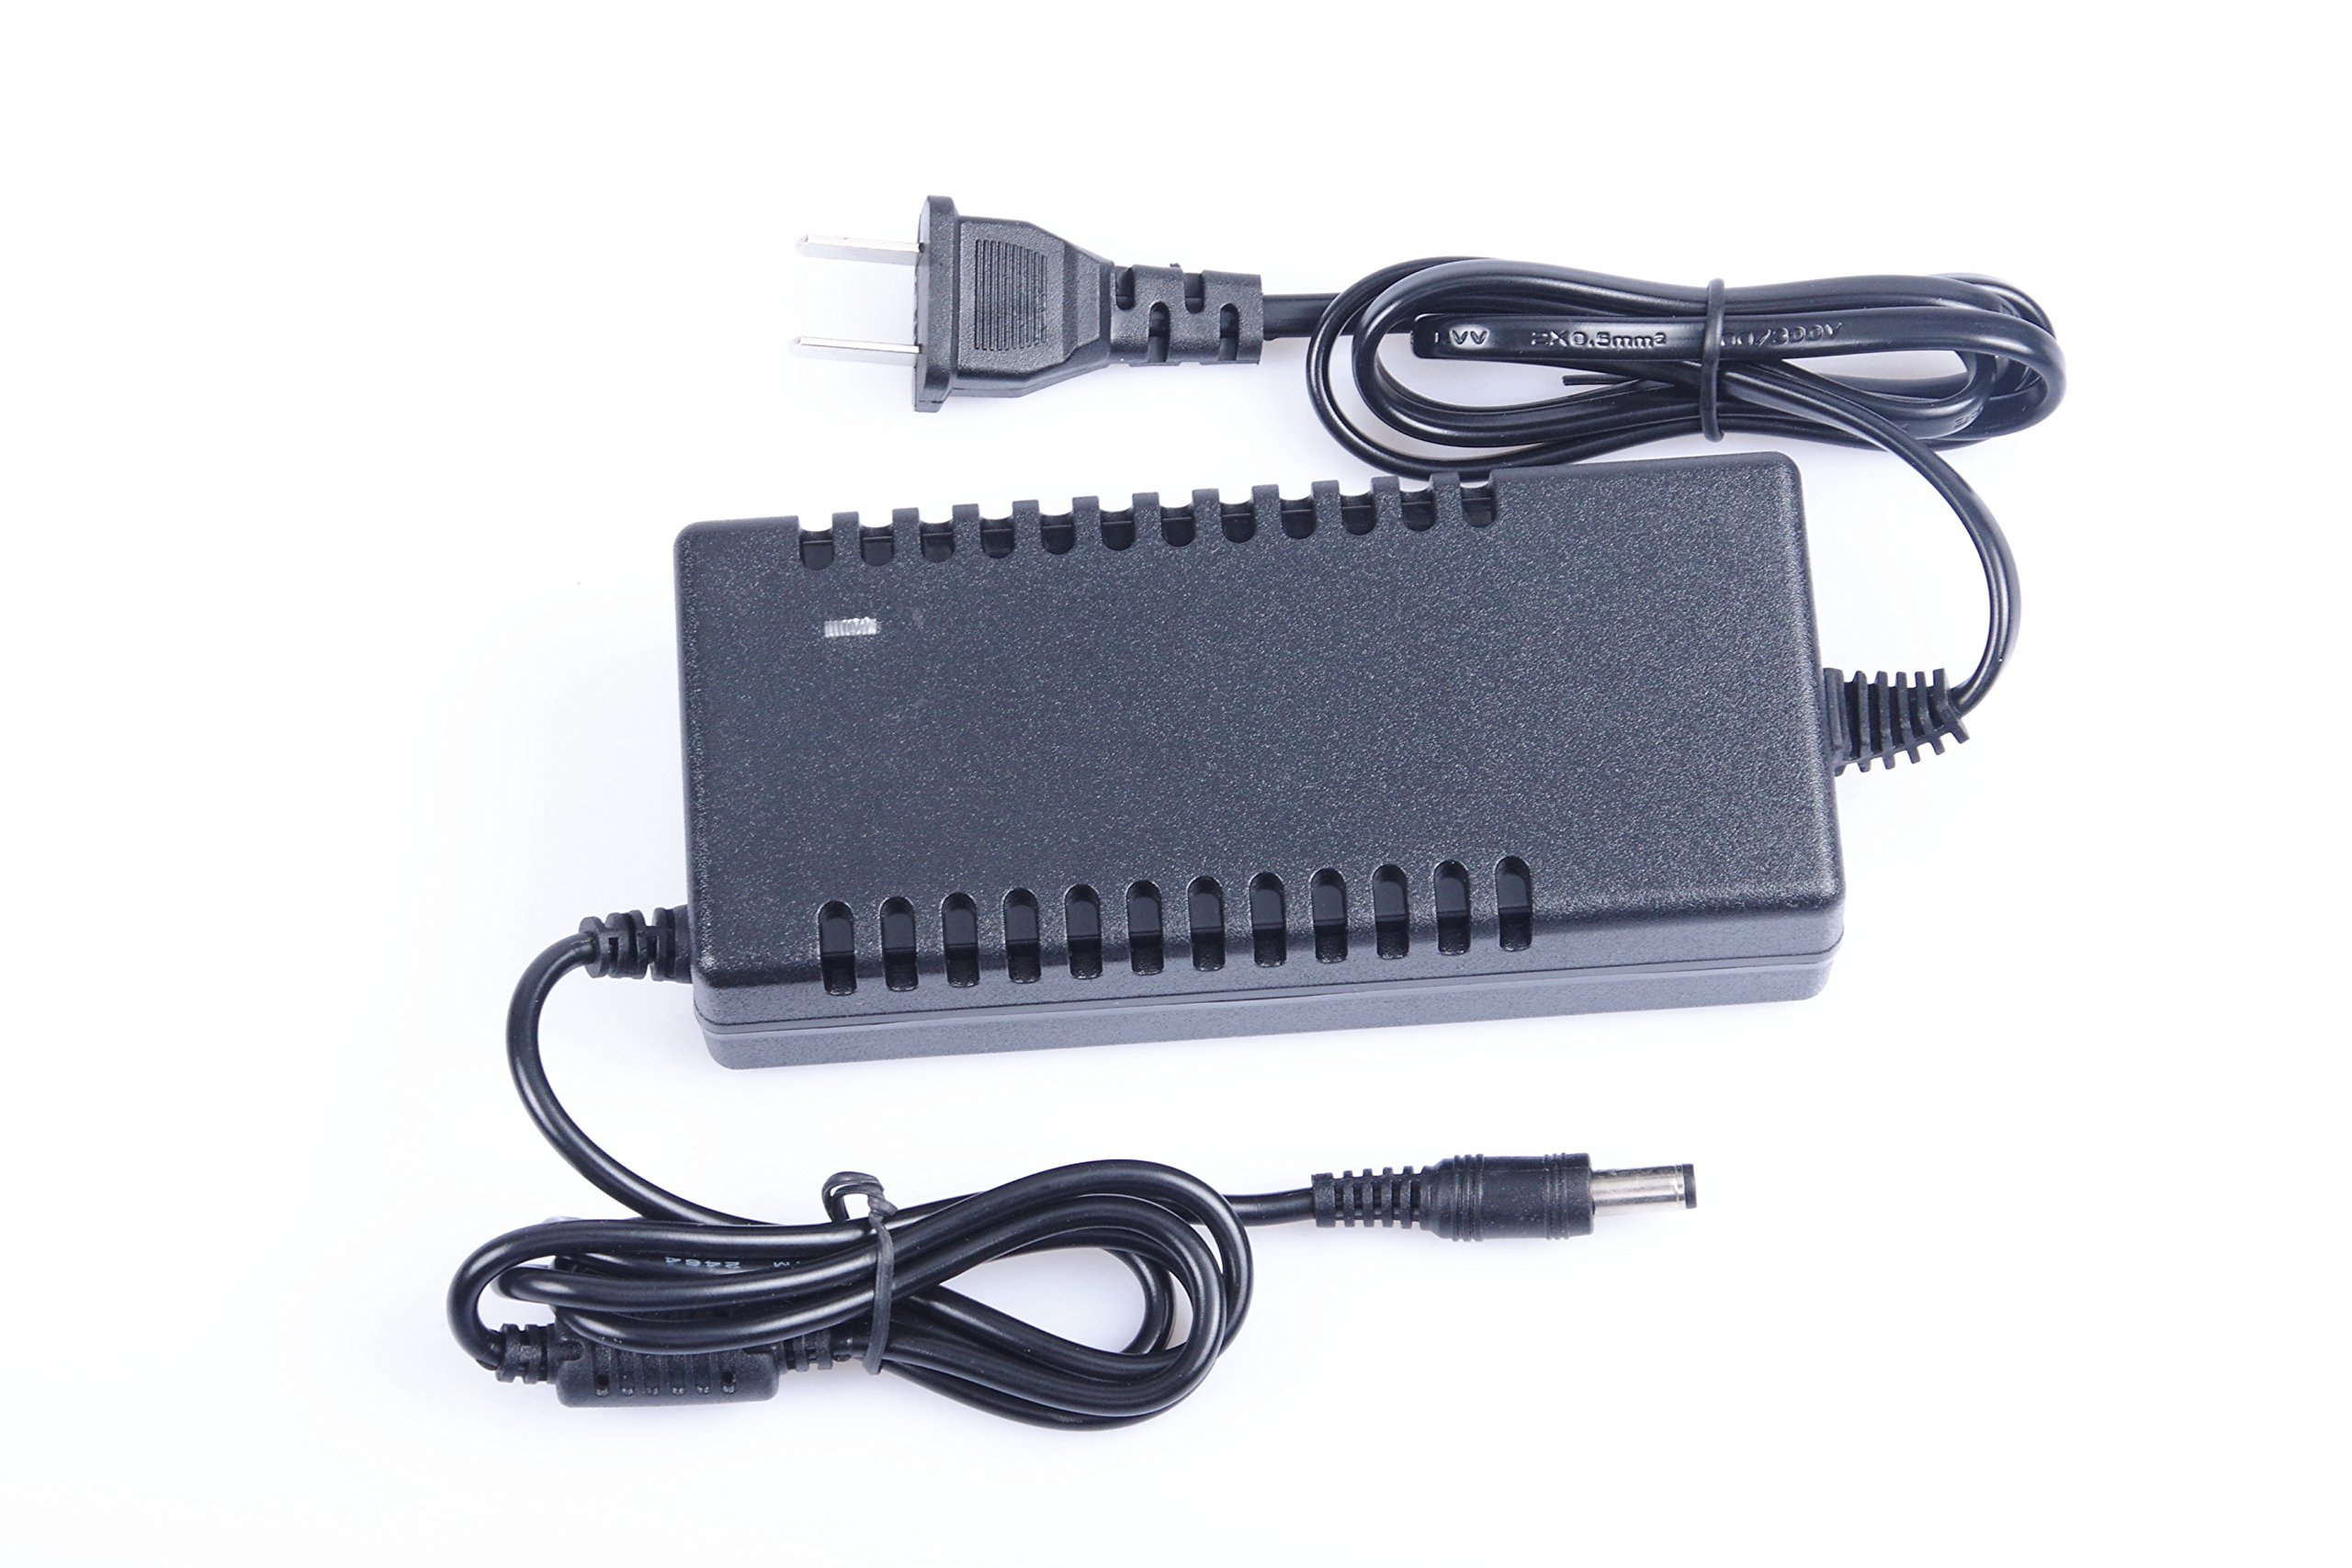 KNACRO 10PCS AC 100-240V to DC 12.6V/5A 12.6v 5a Power Supply Adapter Polymer 12V Battery Charger Transformers with a US Plug